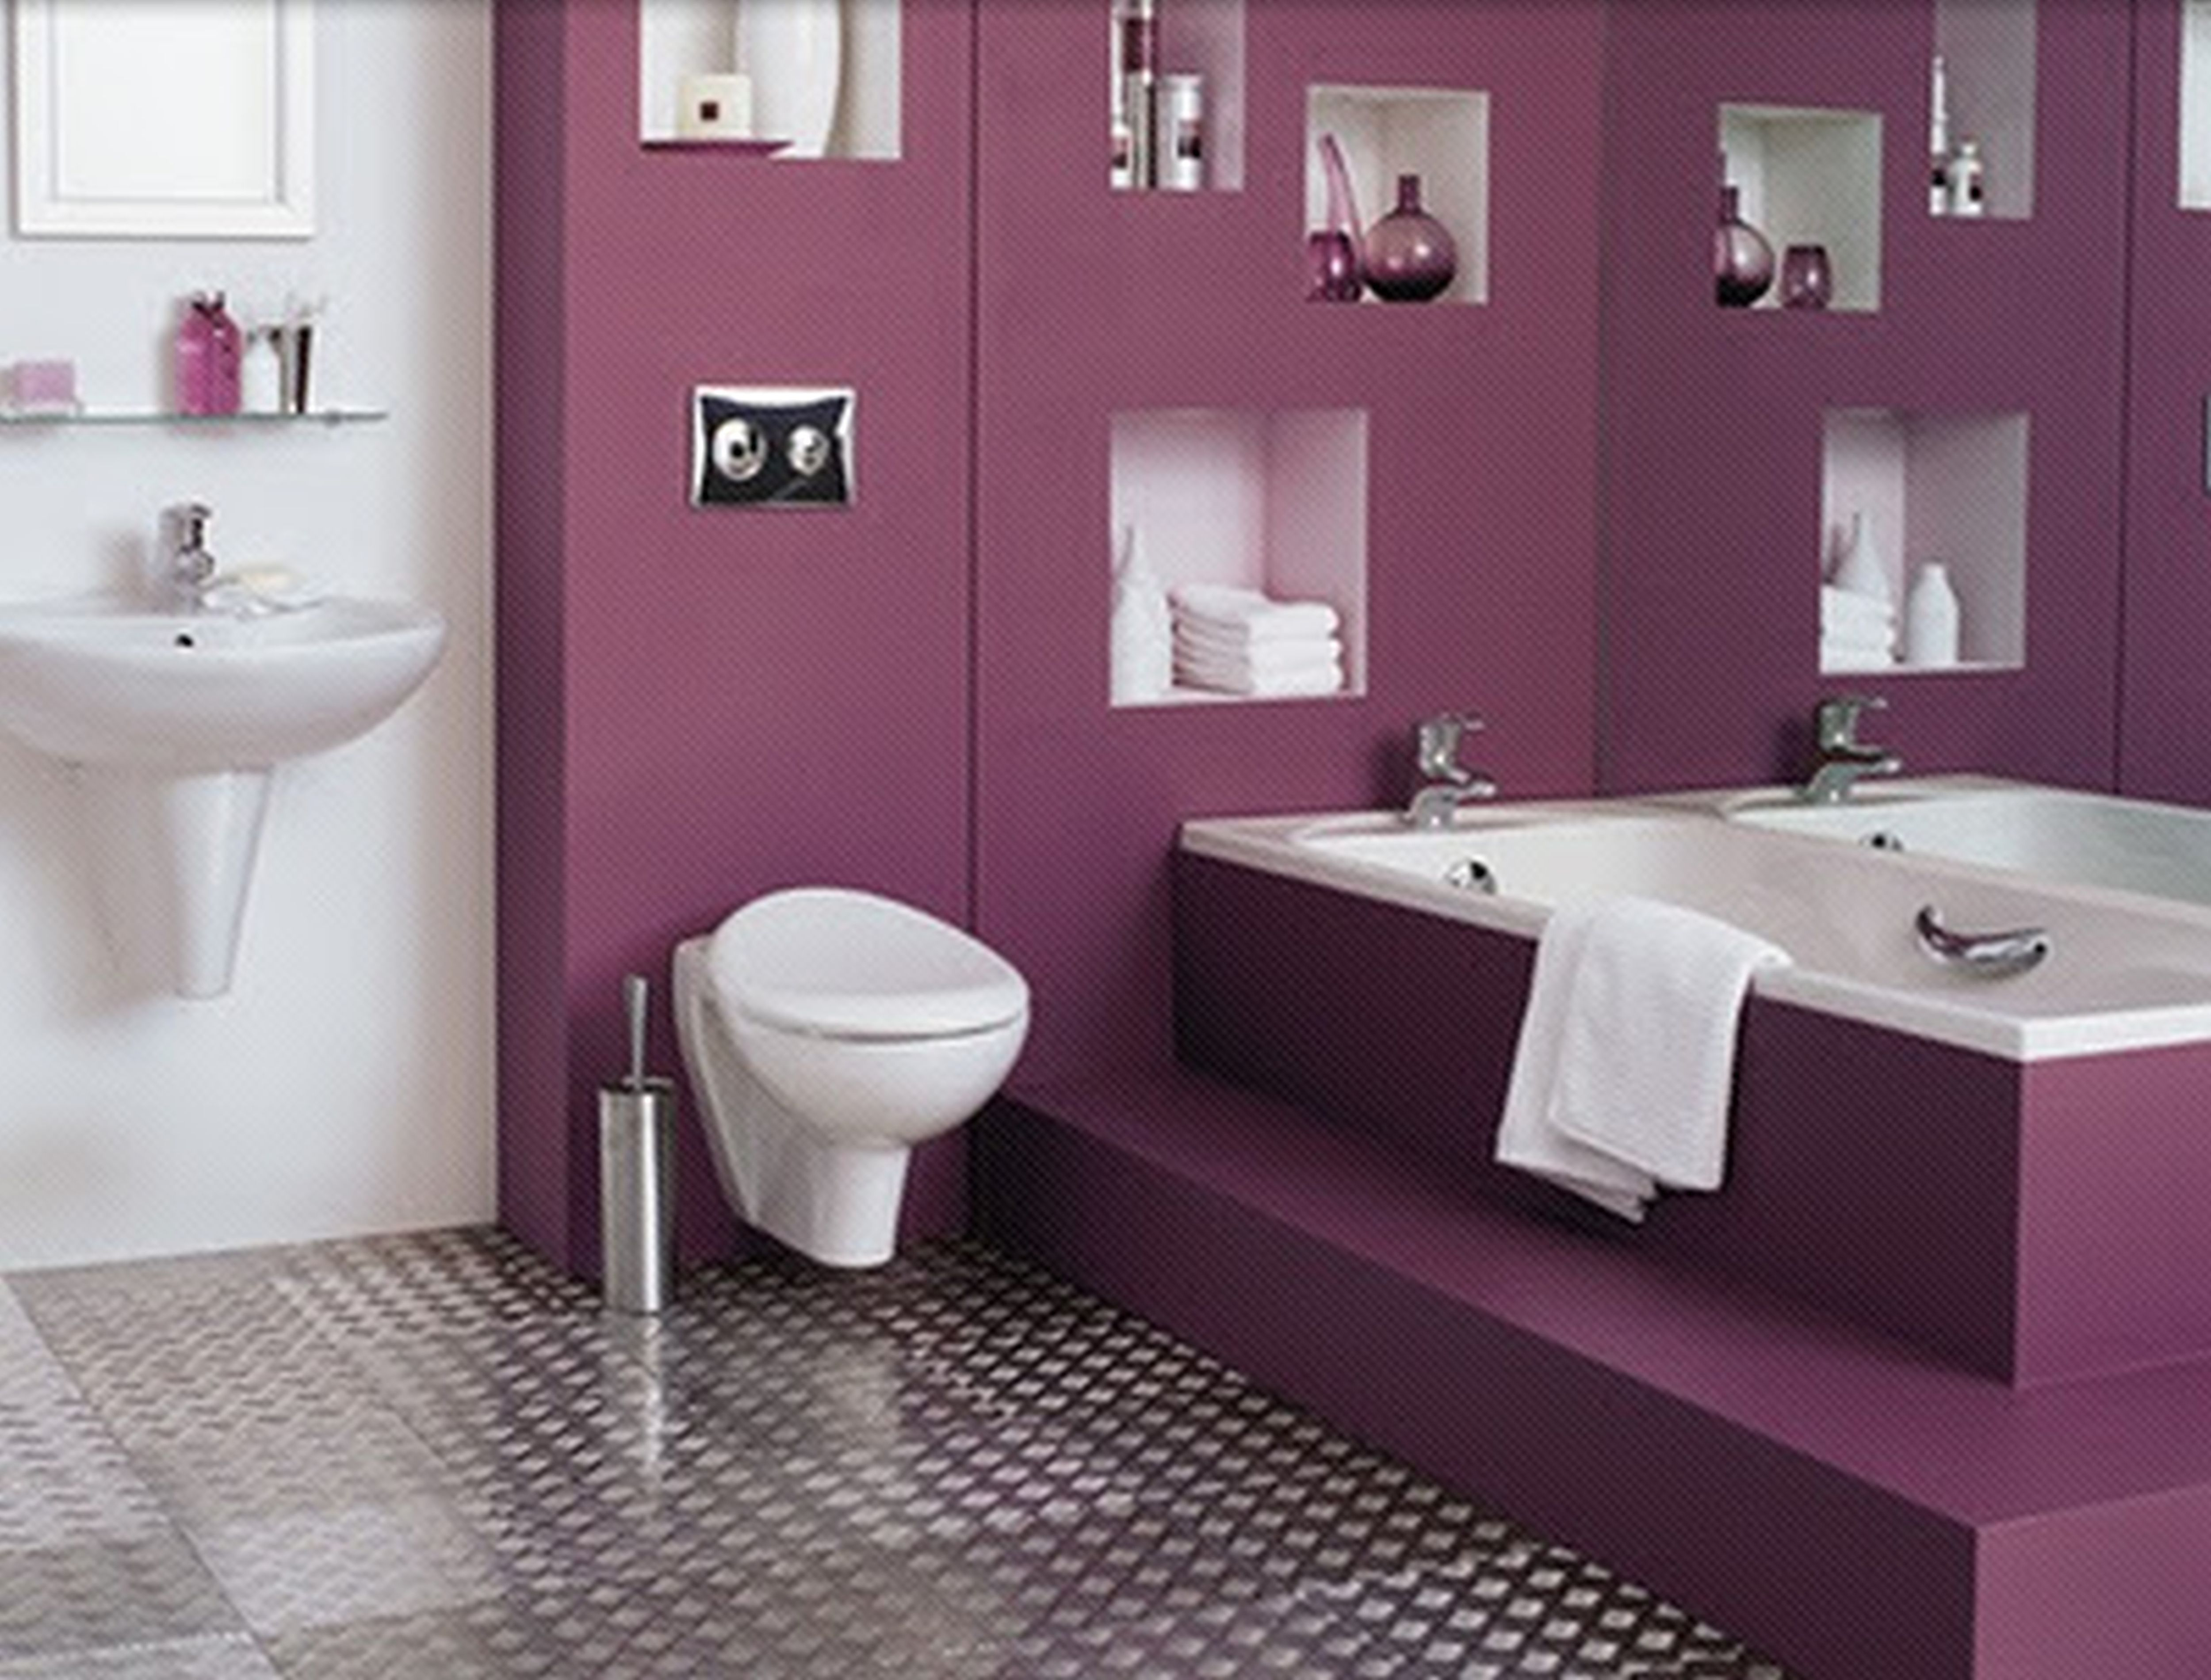 Purple bathroom color ideas - Purple Bathroom Designs Find Best Latest Purple Bathroom Designs For Your Pc Desktop Background Mobile